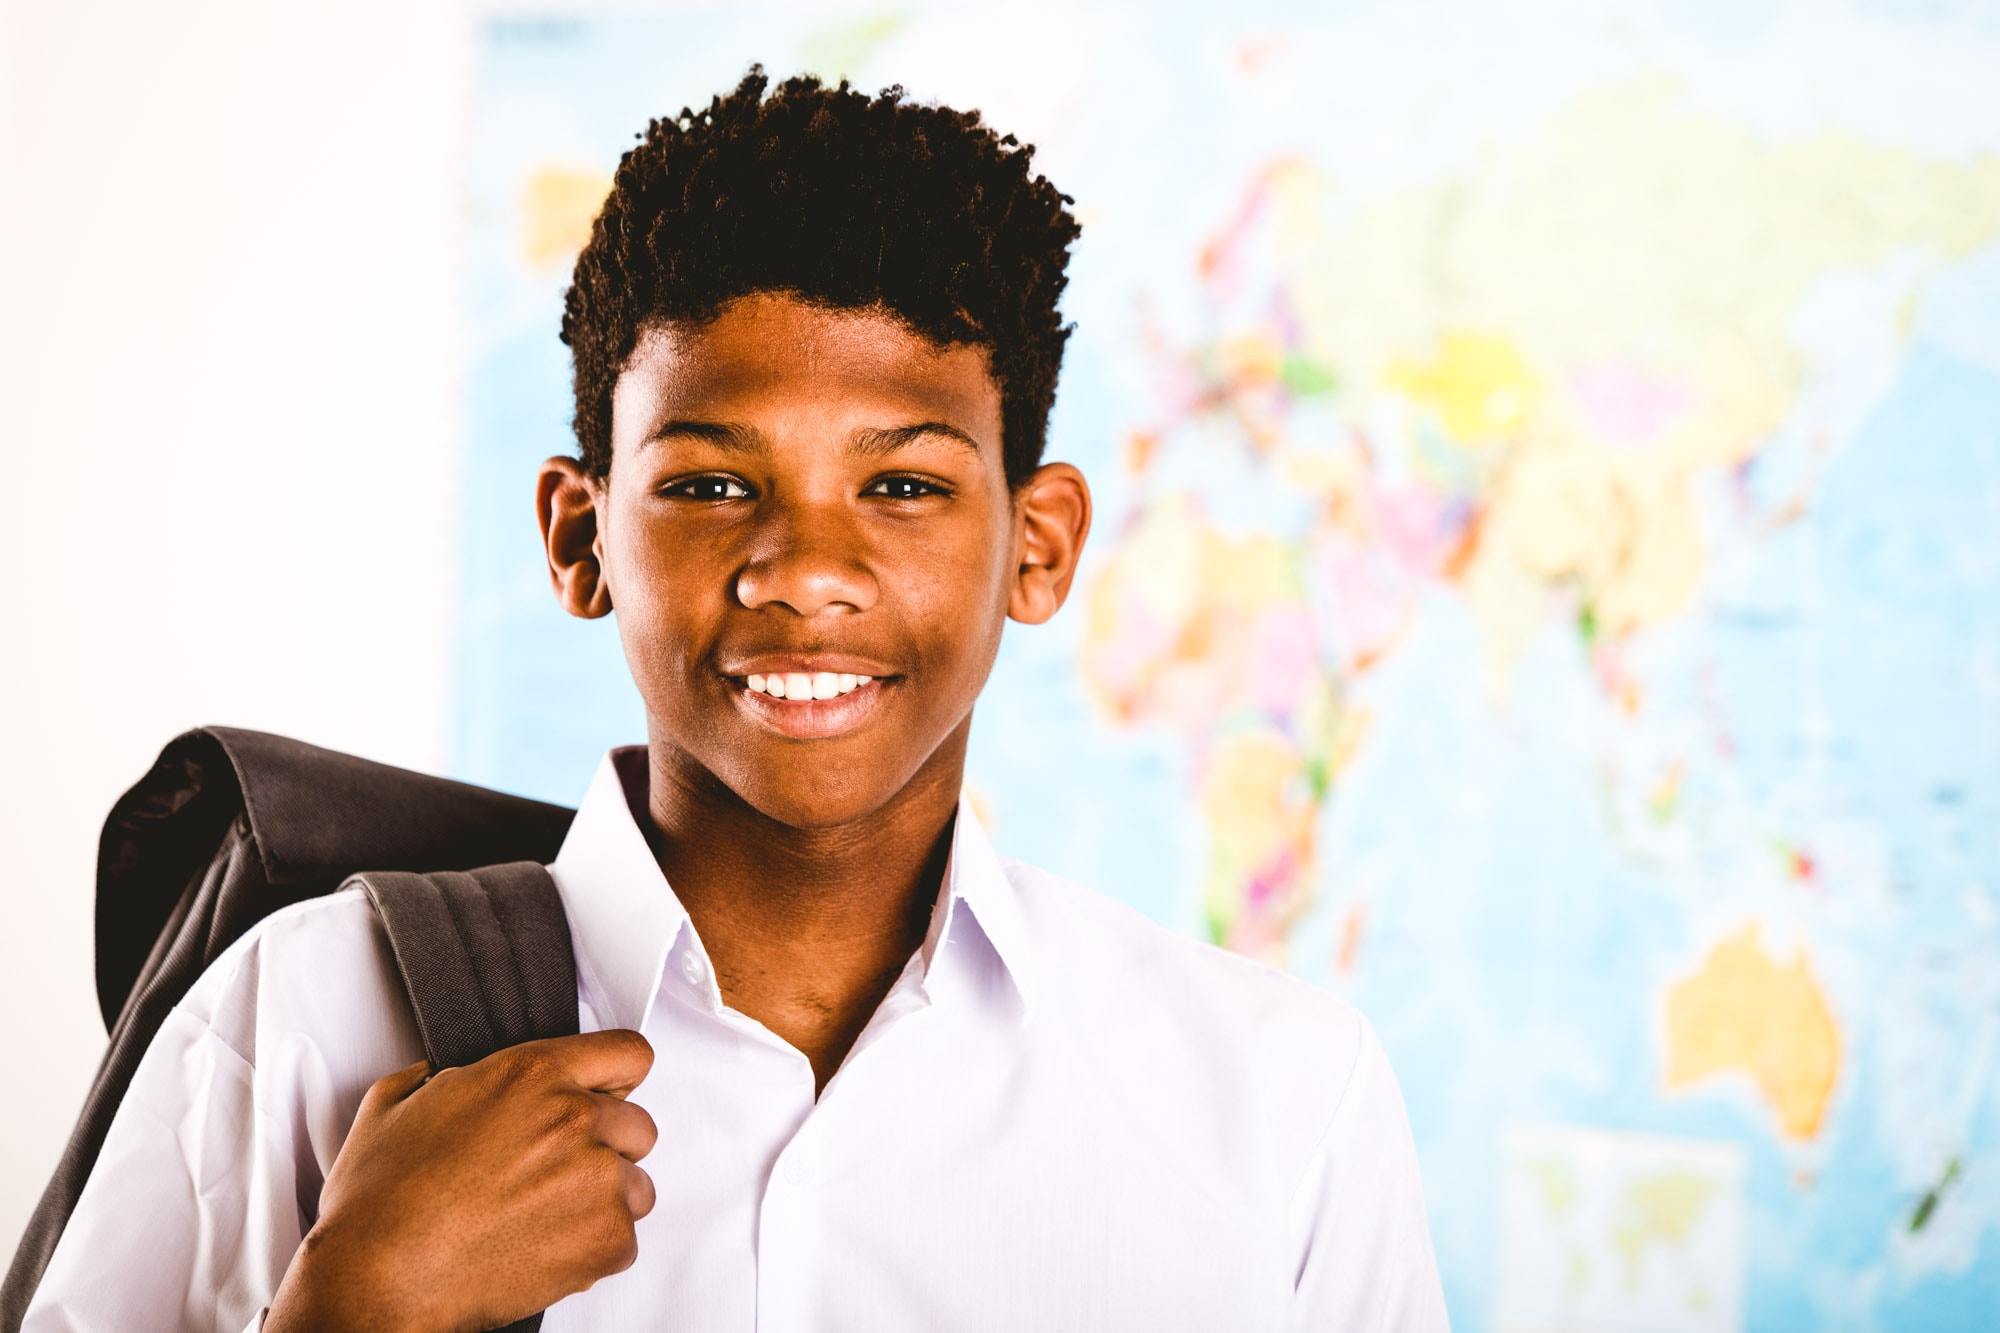 Young African boy in his school uniform and backpack standing in front of a world map grinning happi